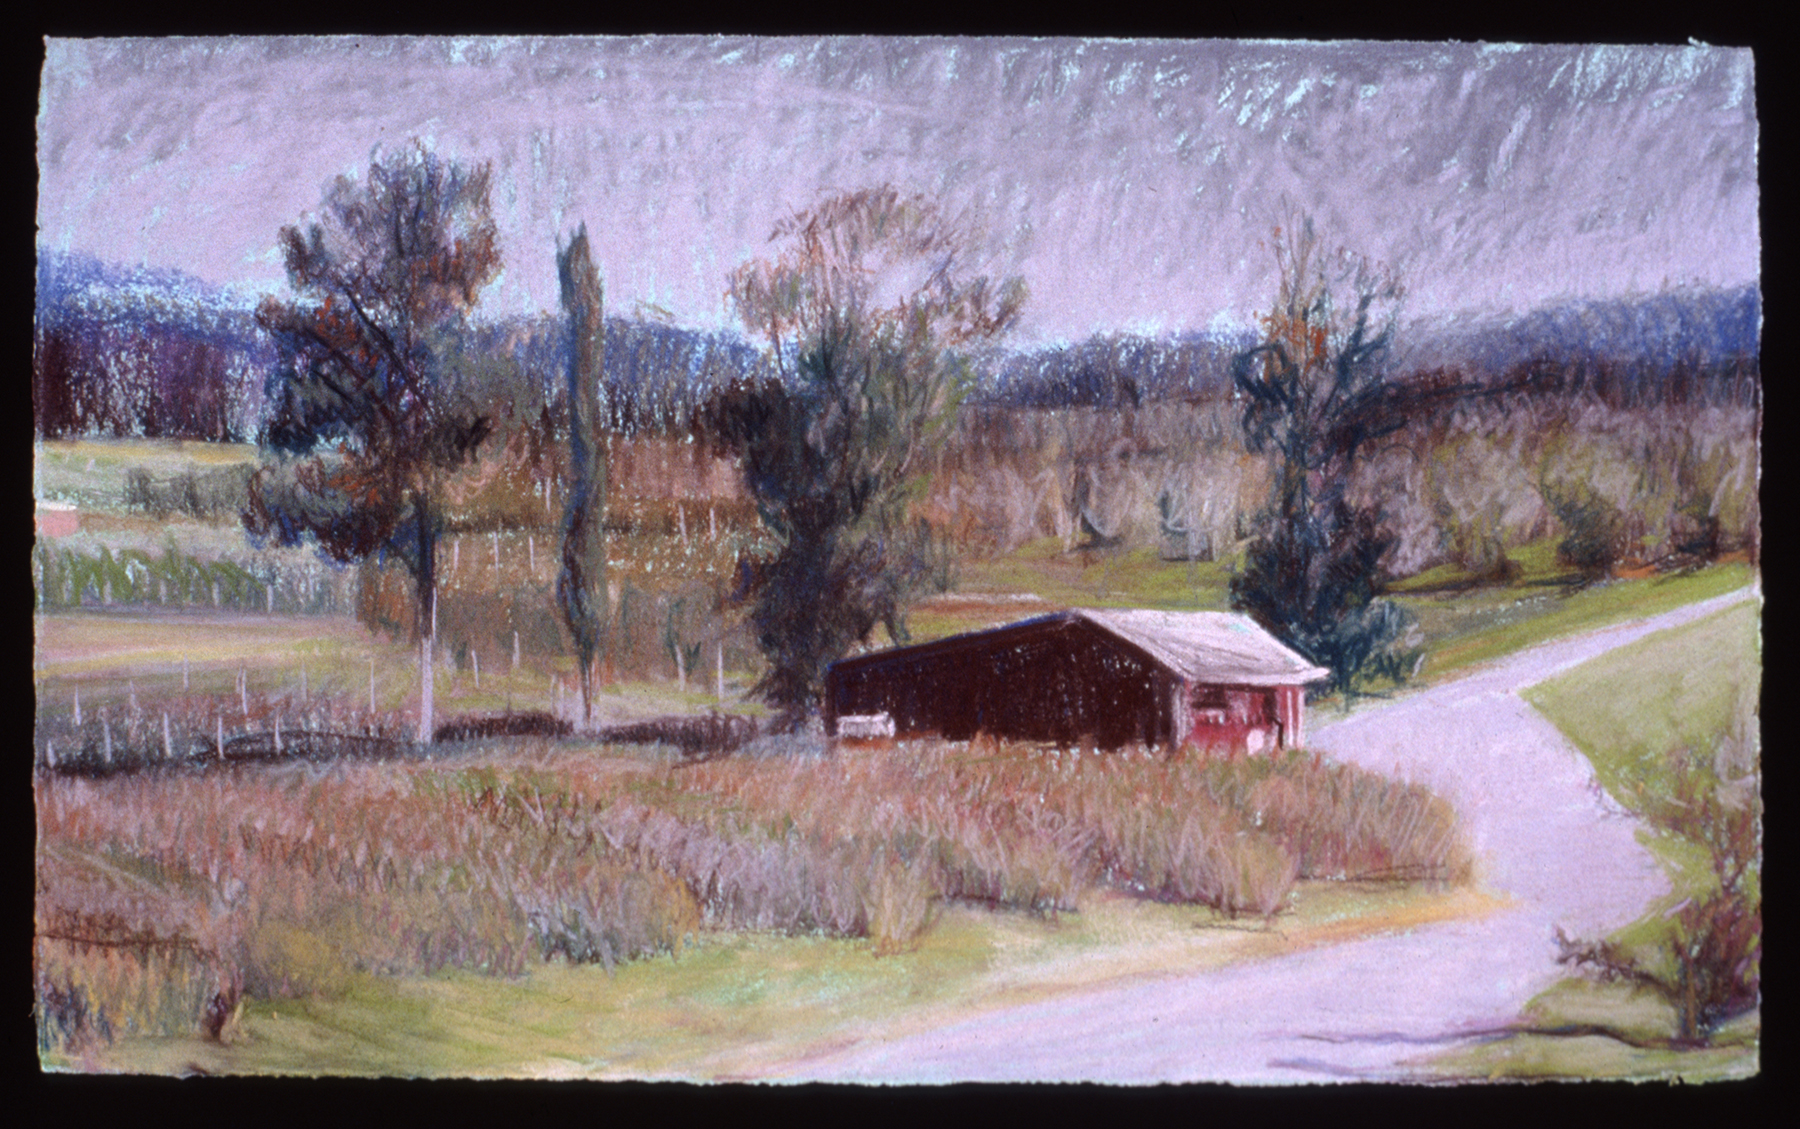 "Red Shed in the Orchard  Pastel, 15x22"", 1999"